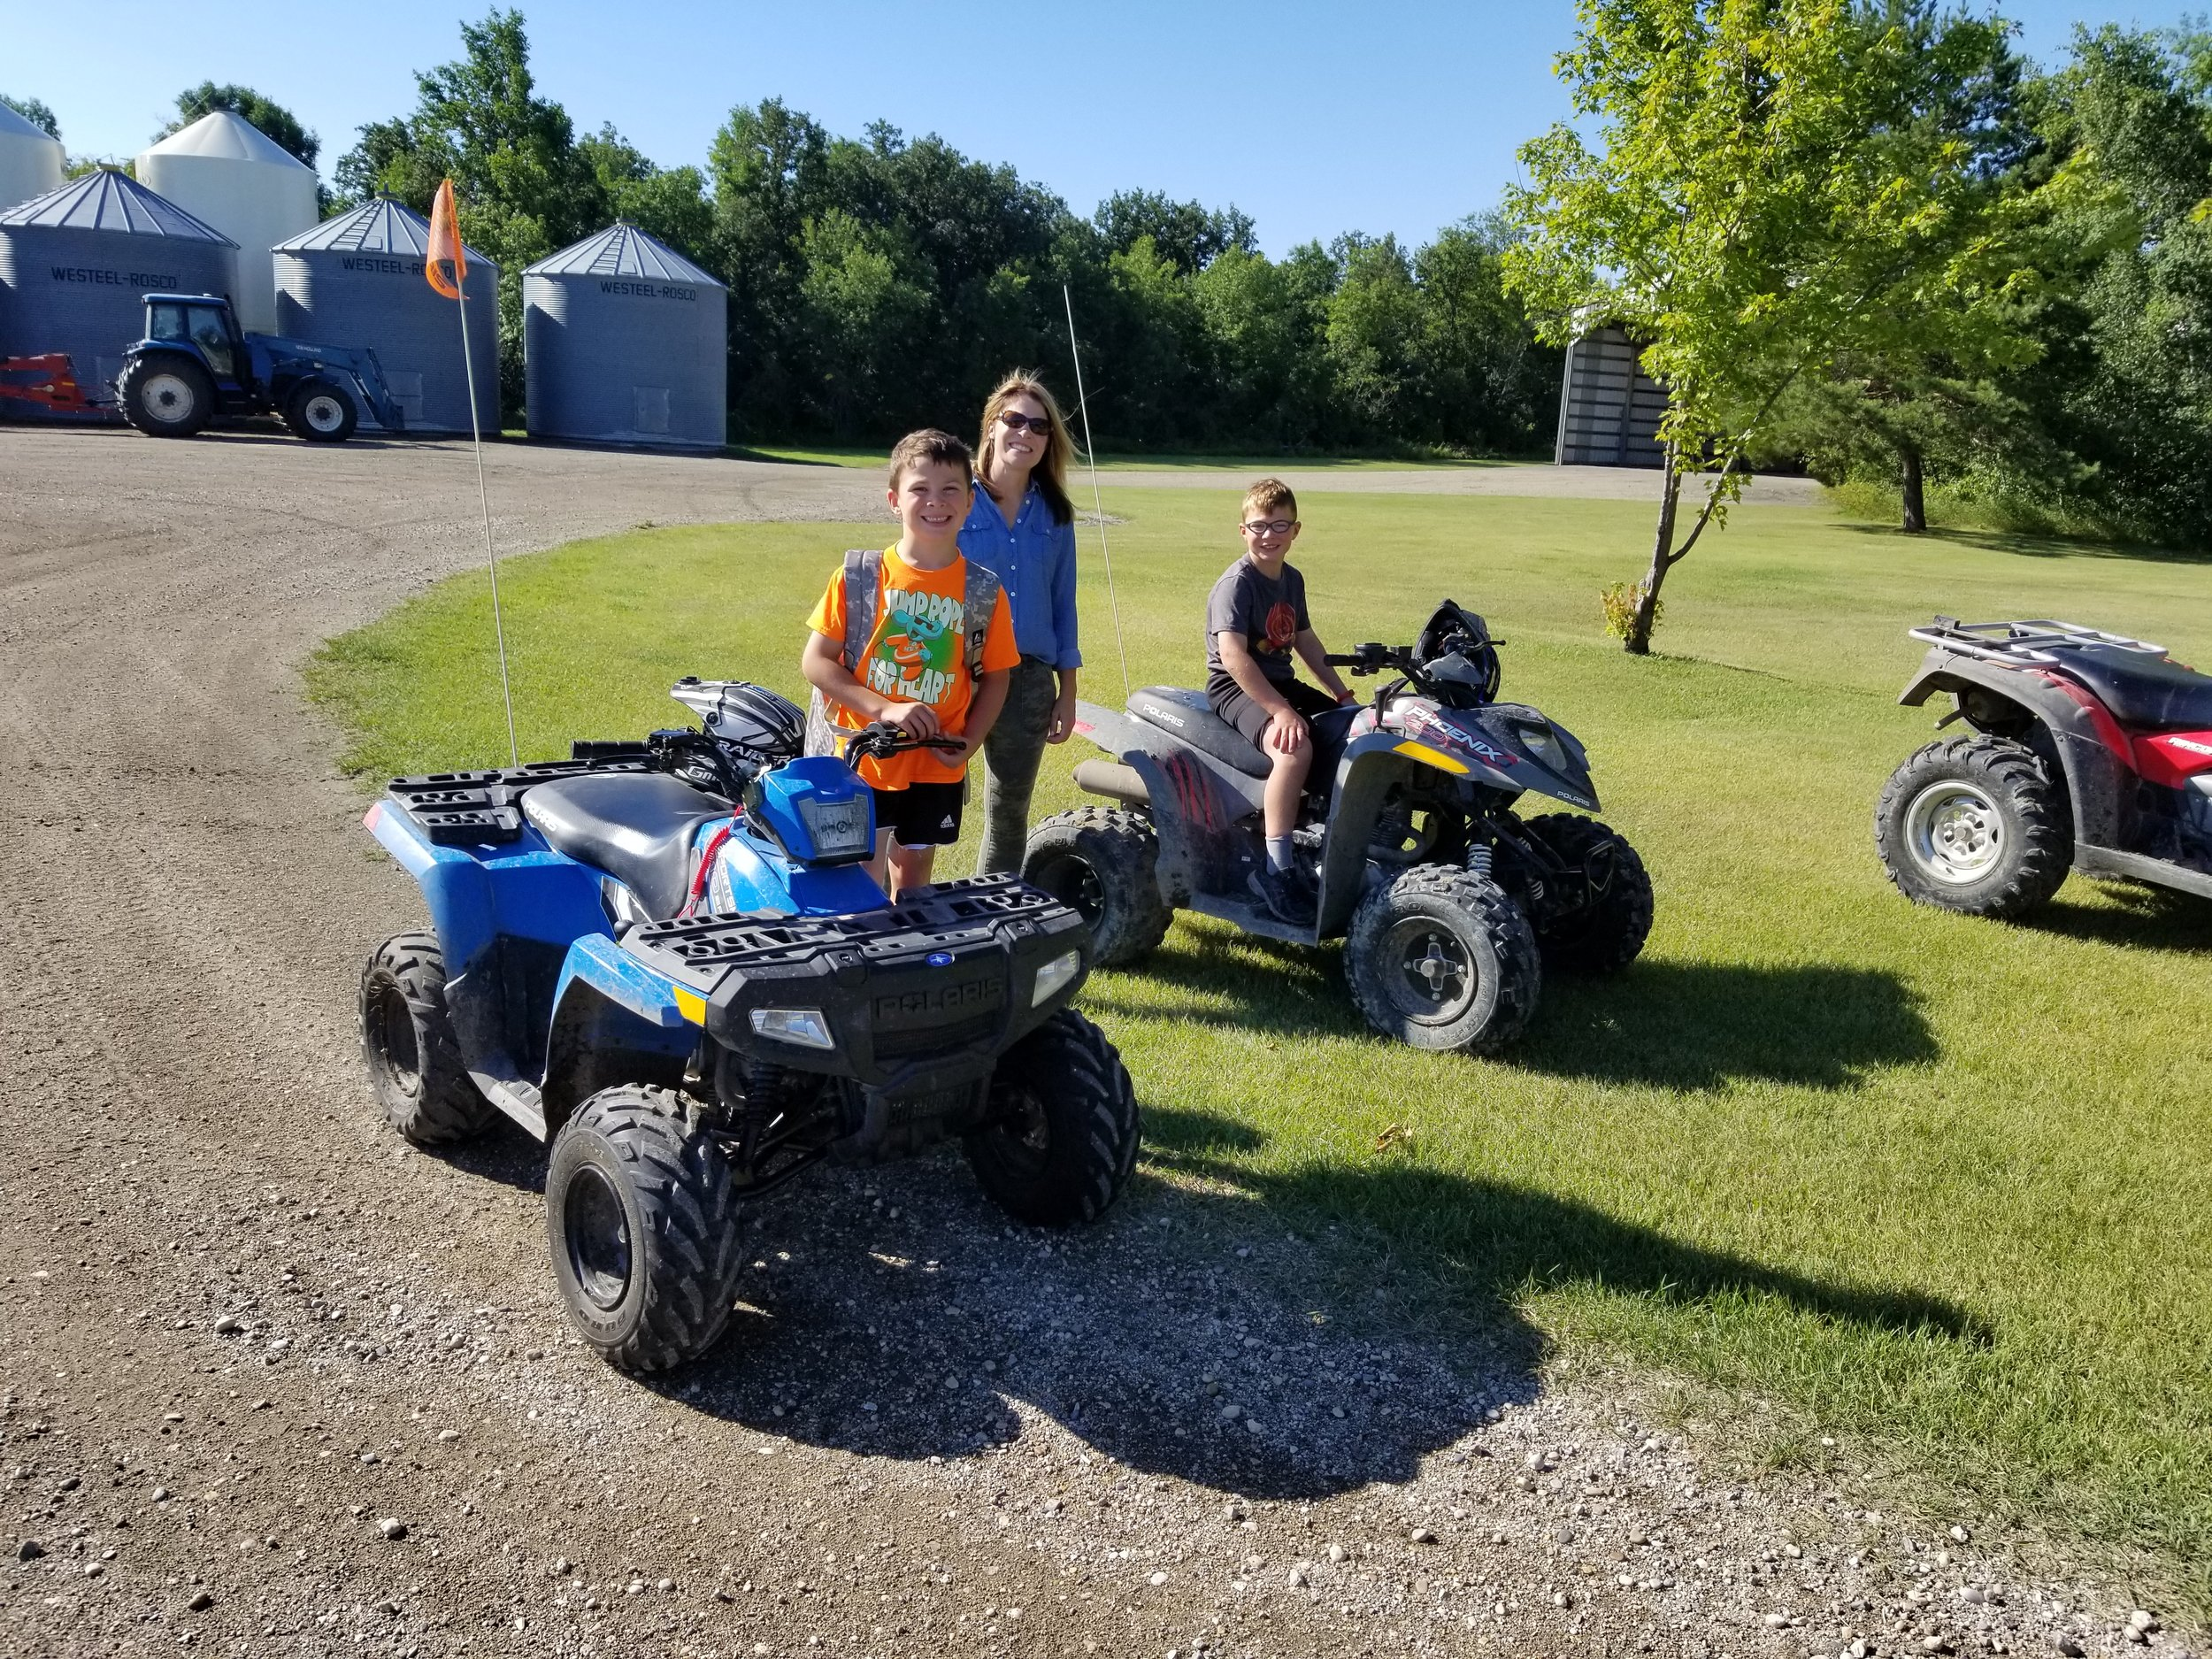 5 - Being able to see everything and go everywhere on the quads